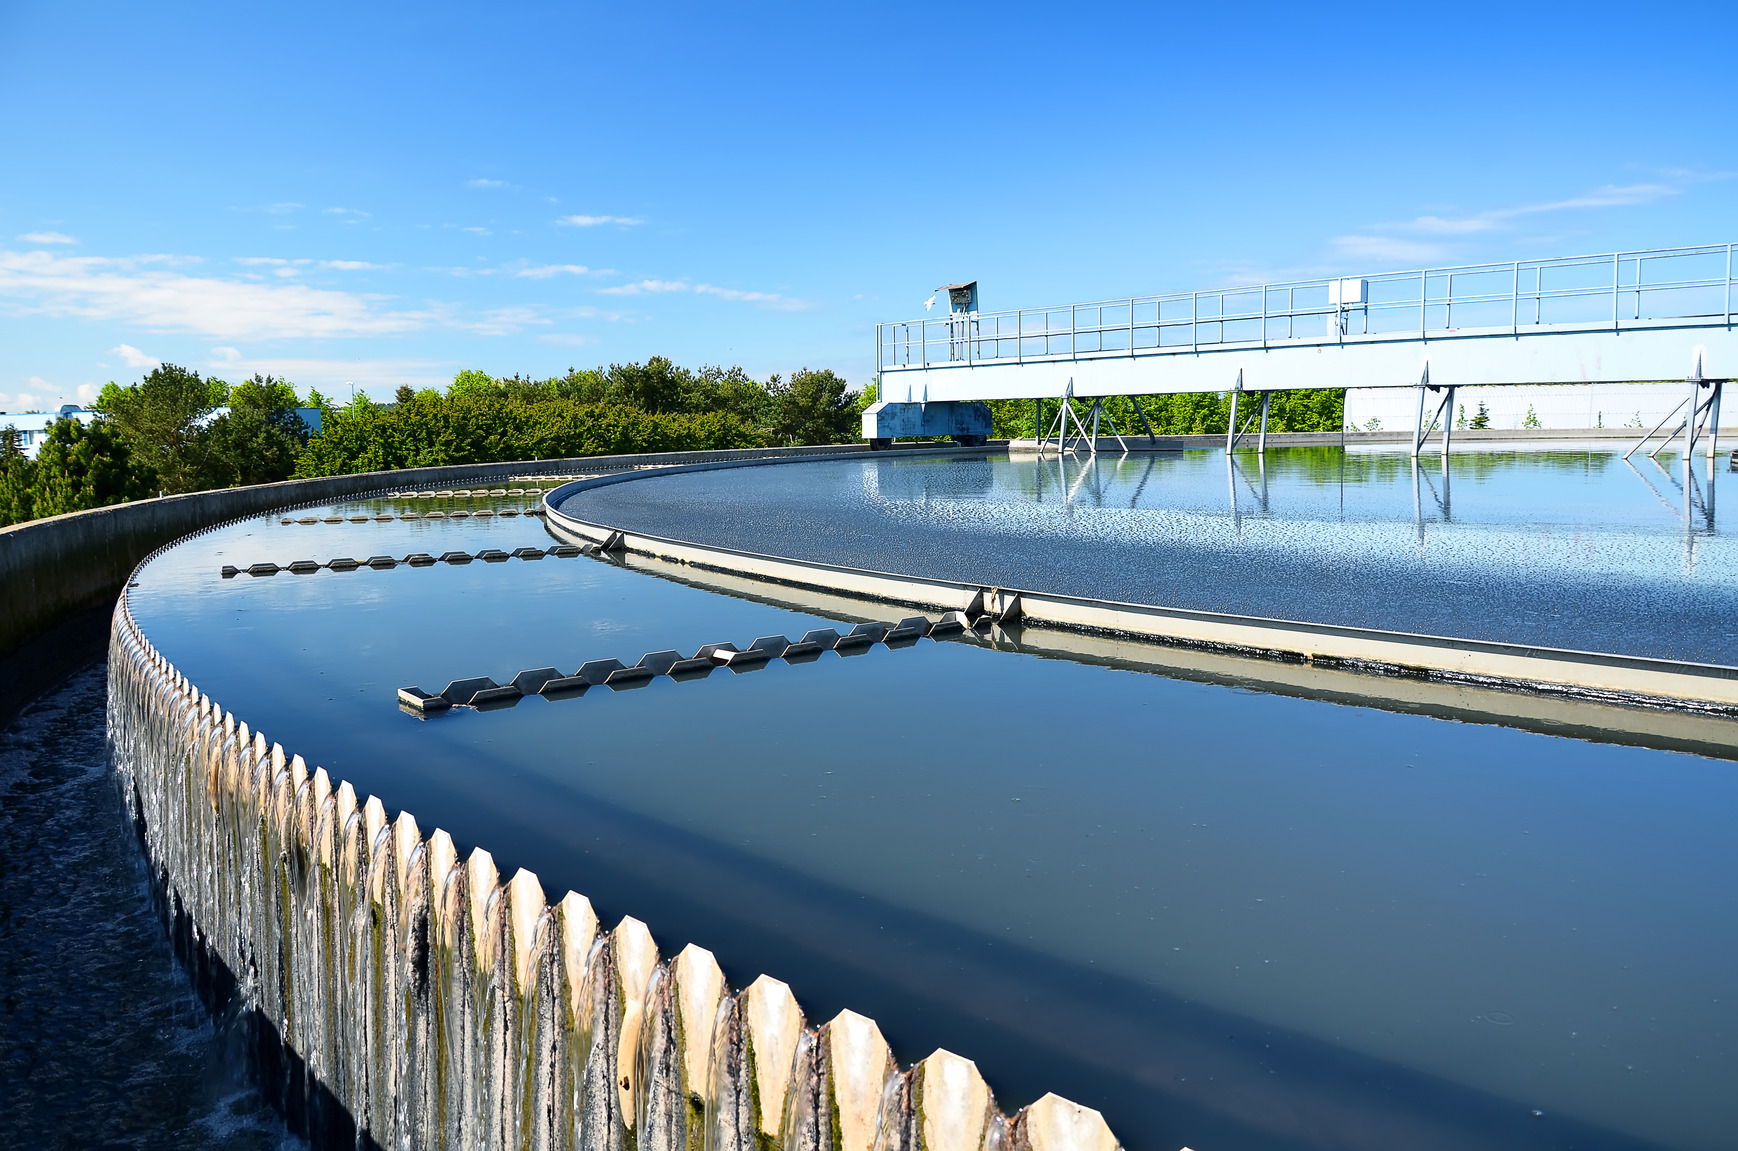 Modern urban wastewater treatment plant.